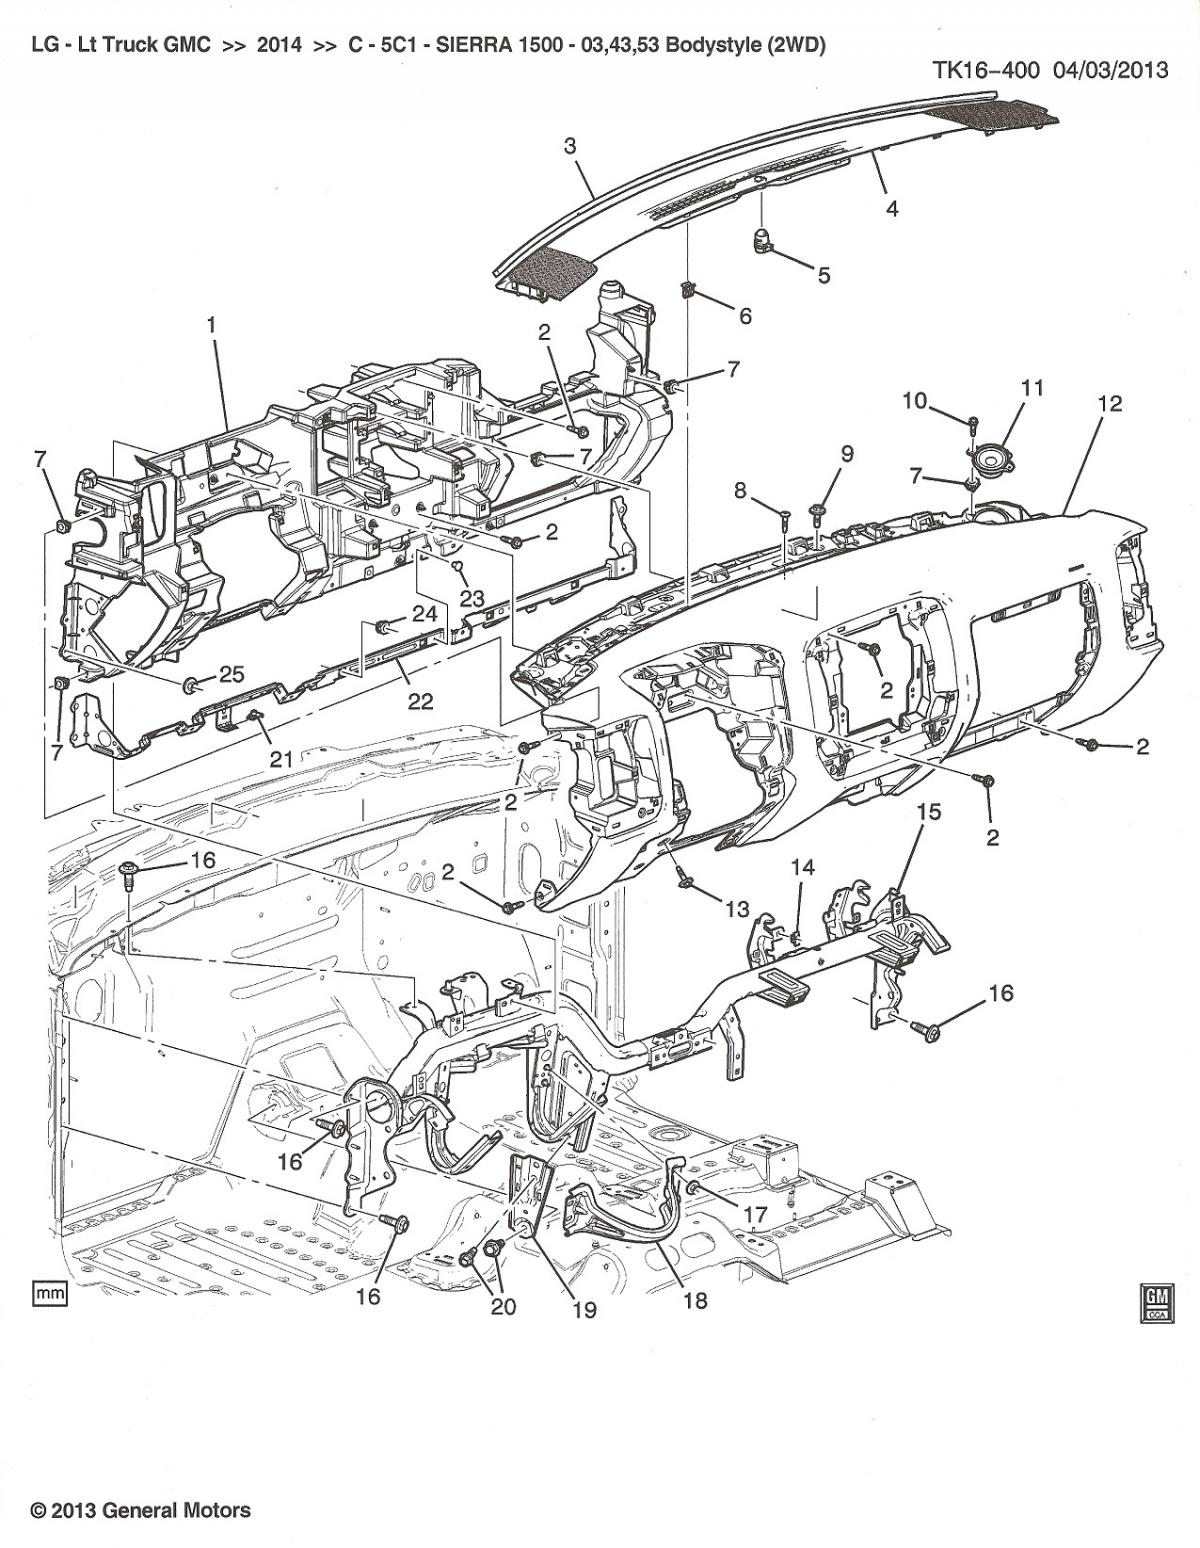 2014 Chevy Silverado Parts Diagram. Wire. Auto Wiring Diagram